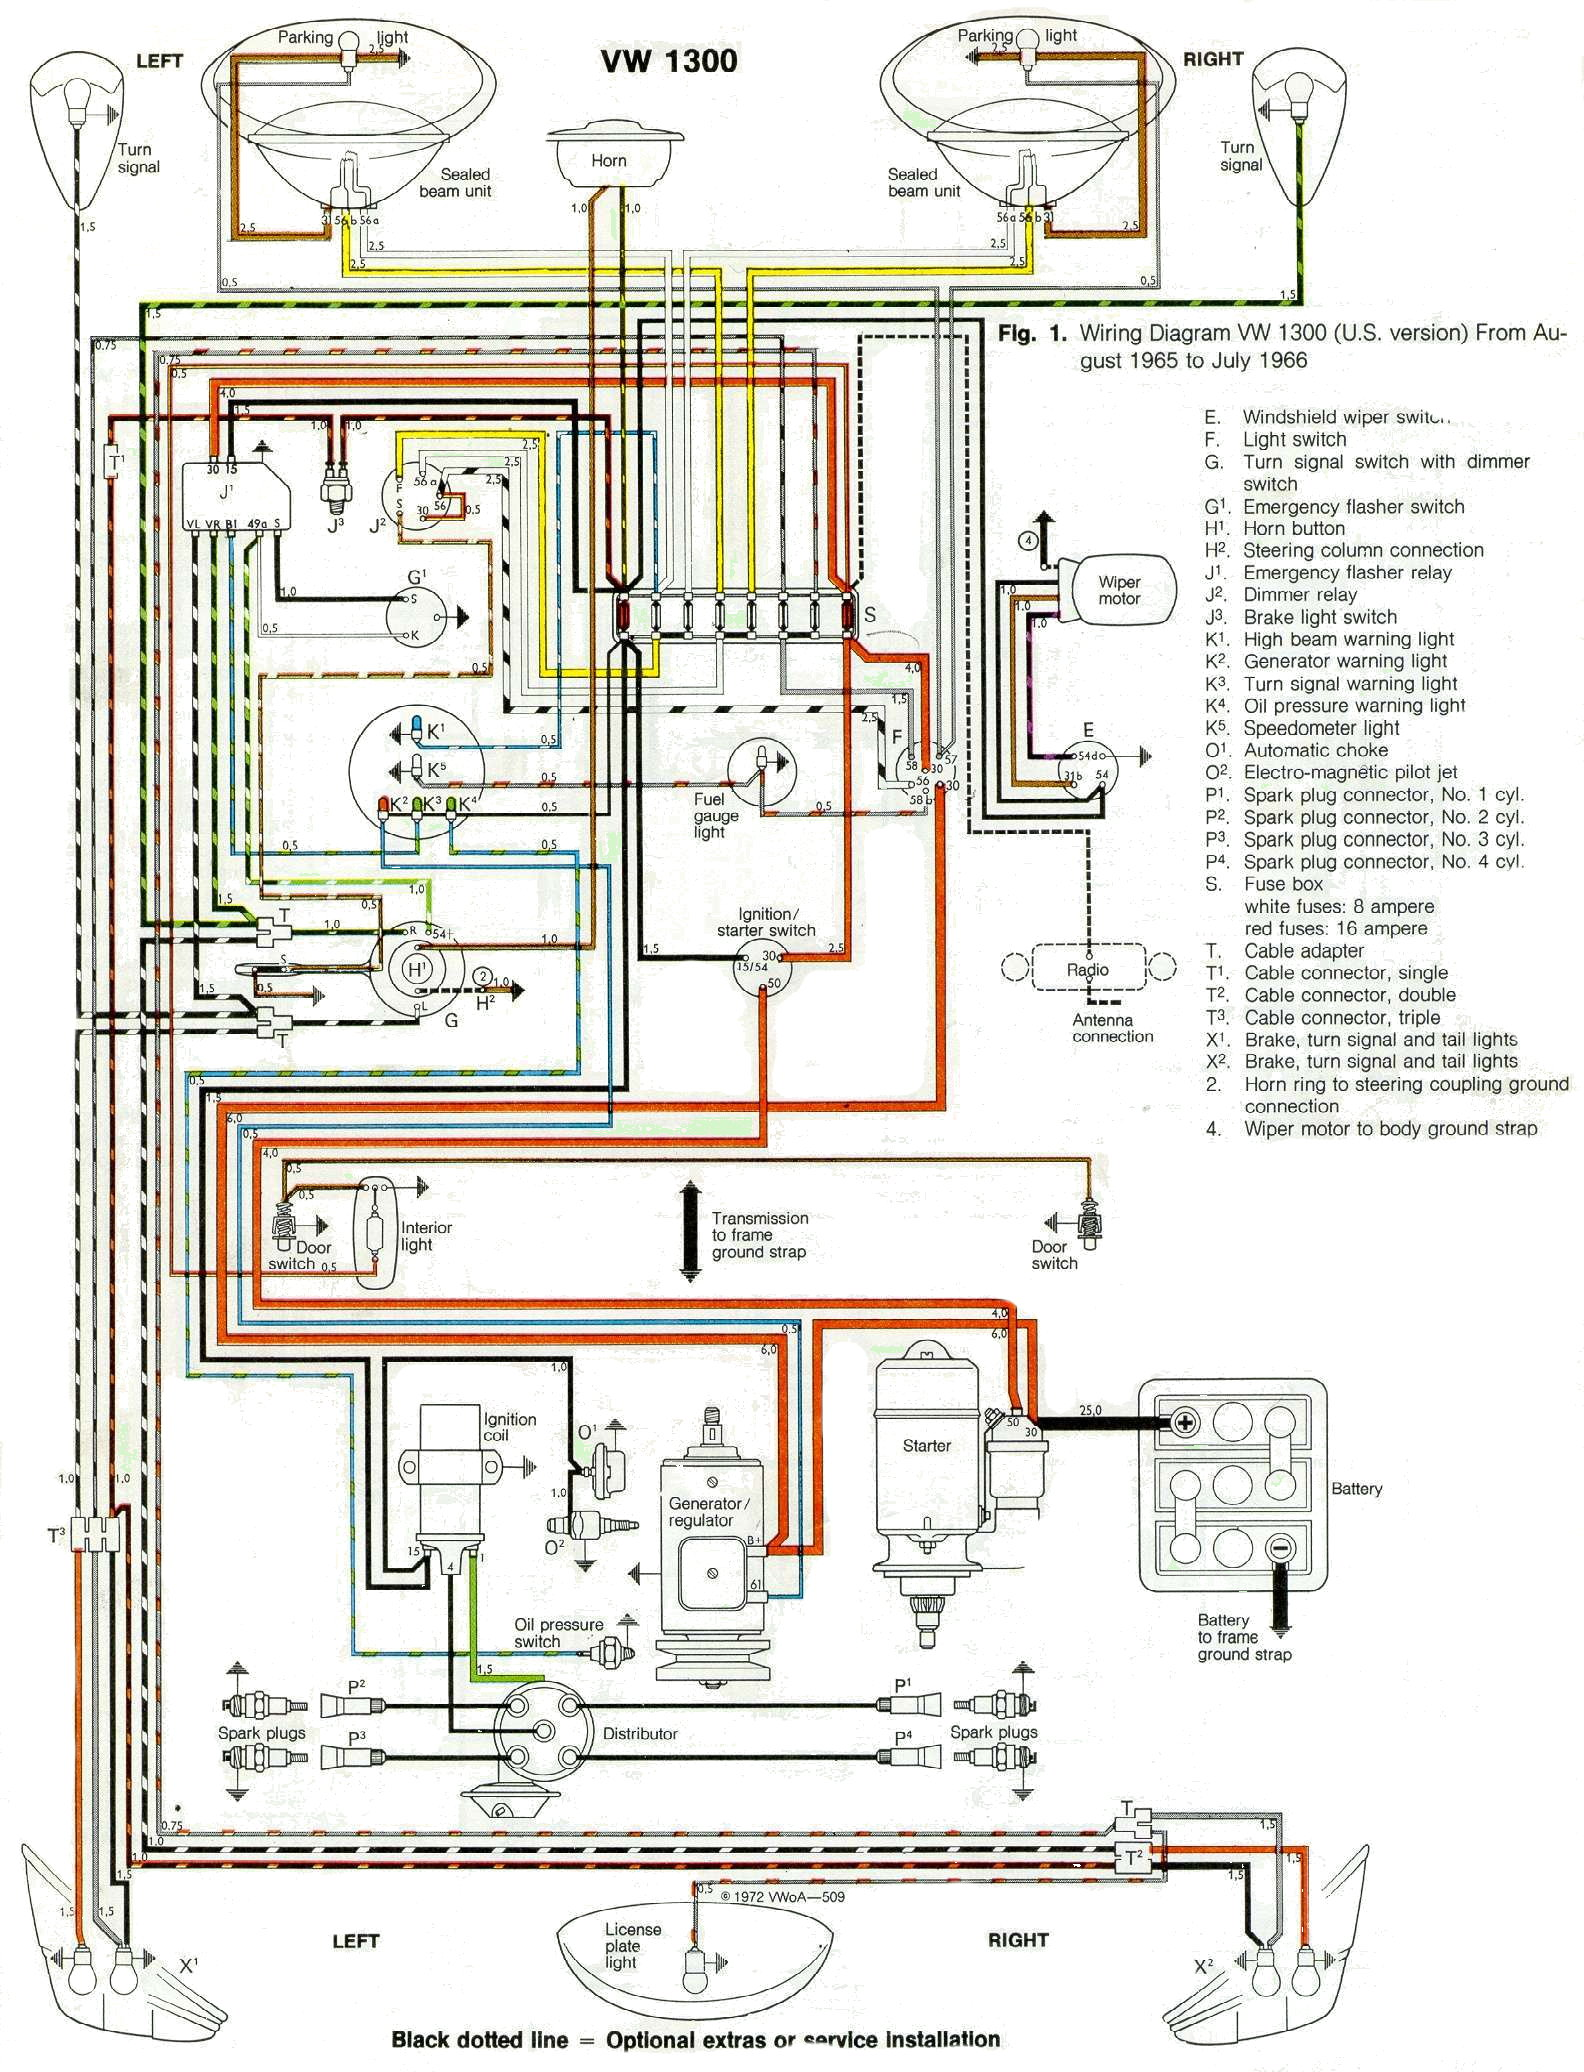 1966 Wiring 1966 wiring diagram VW Alternator Hook Up at reclaimingppi.co